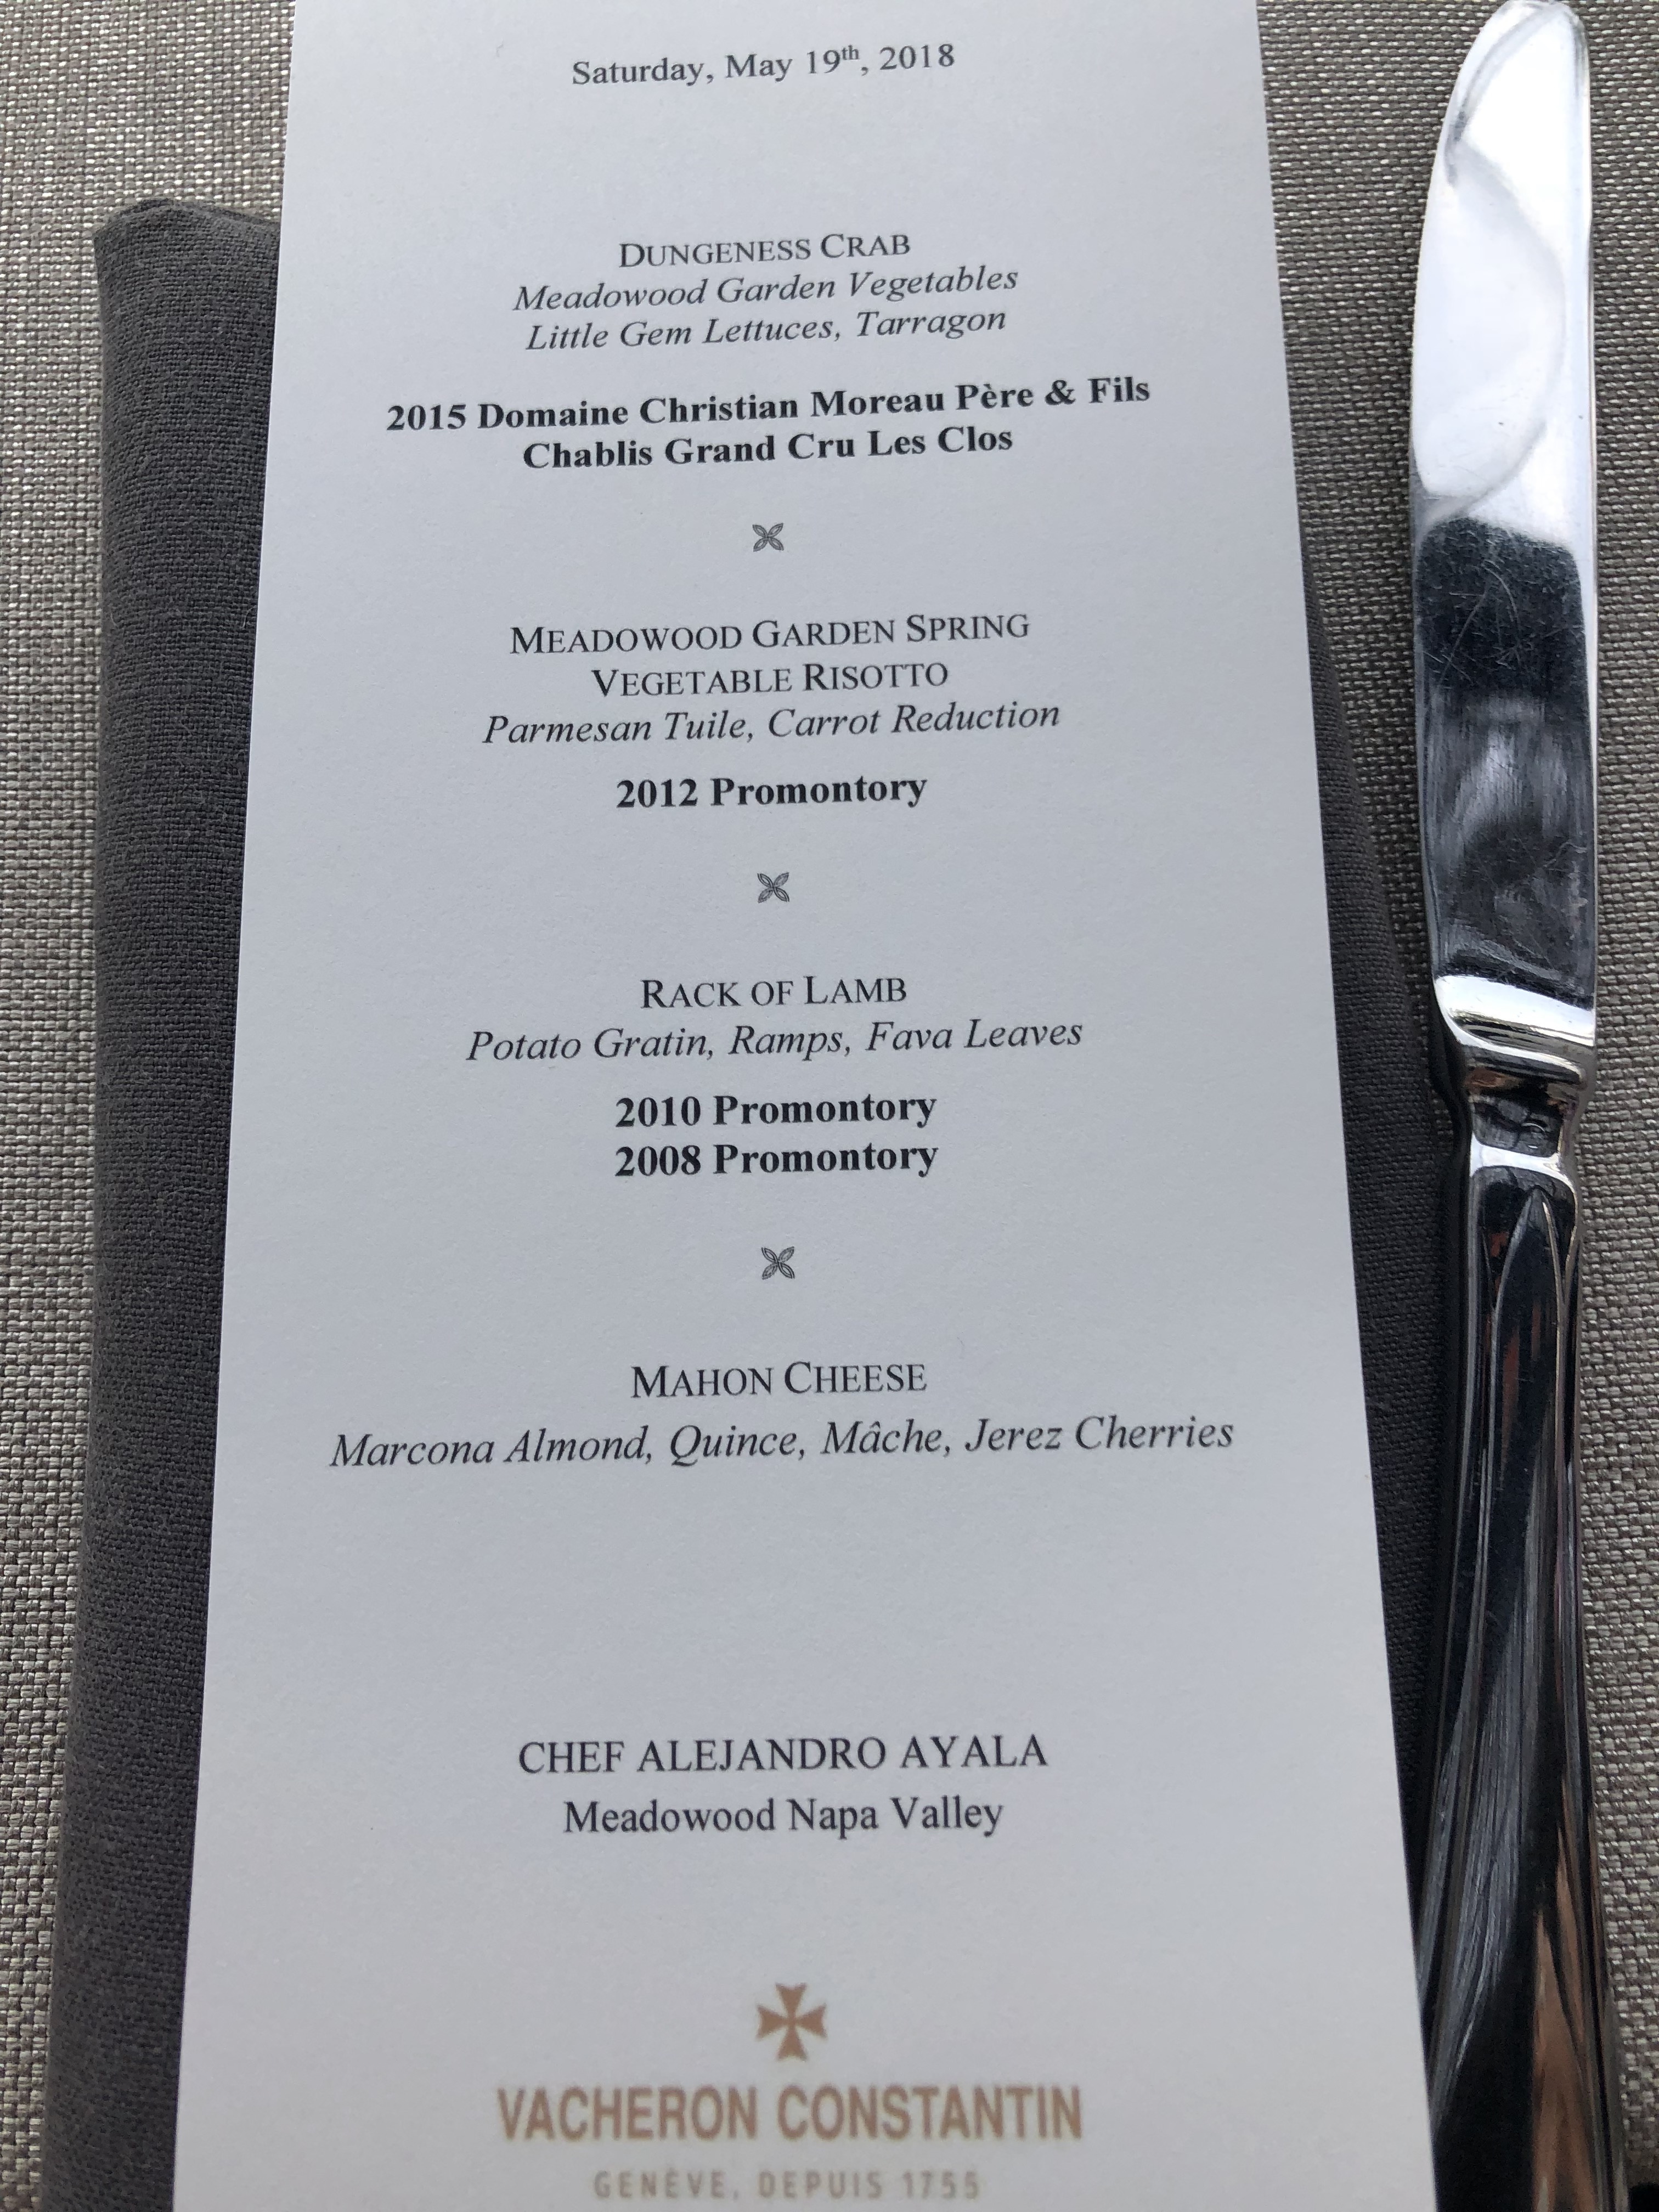 The Vacheron Constantin and Promontory menu